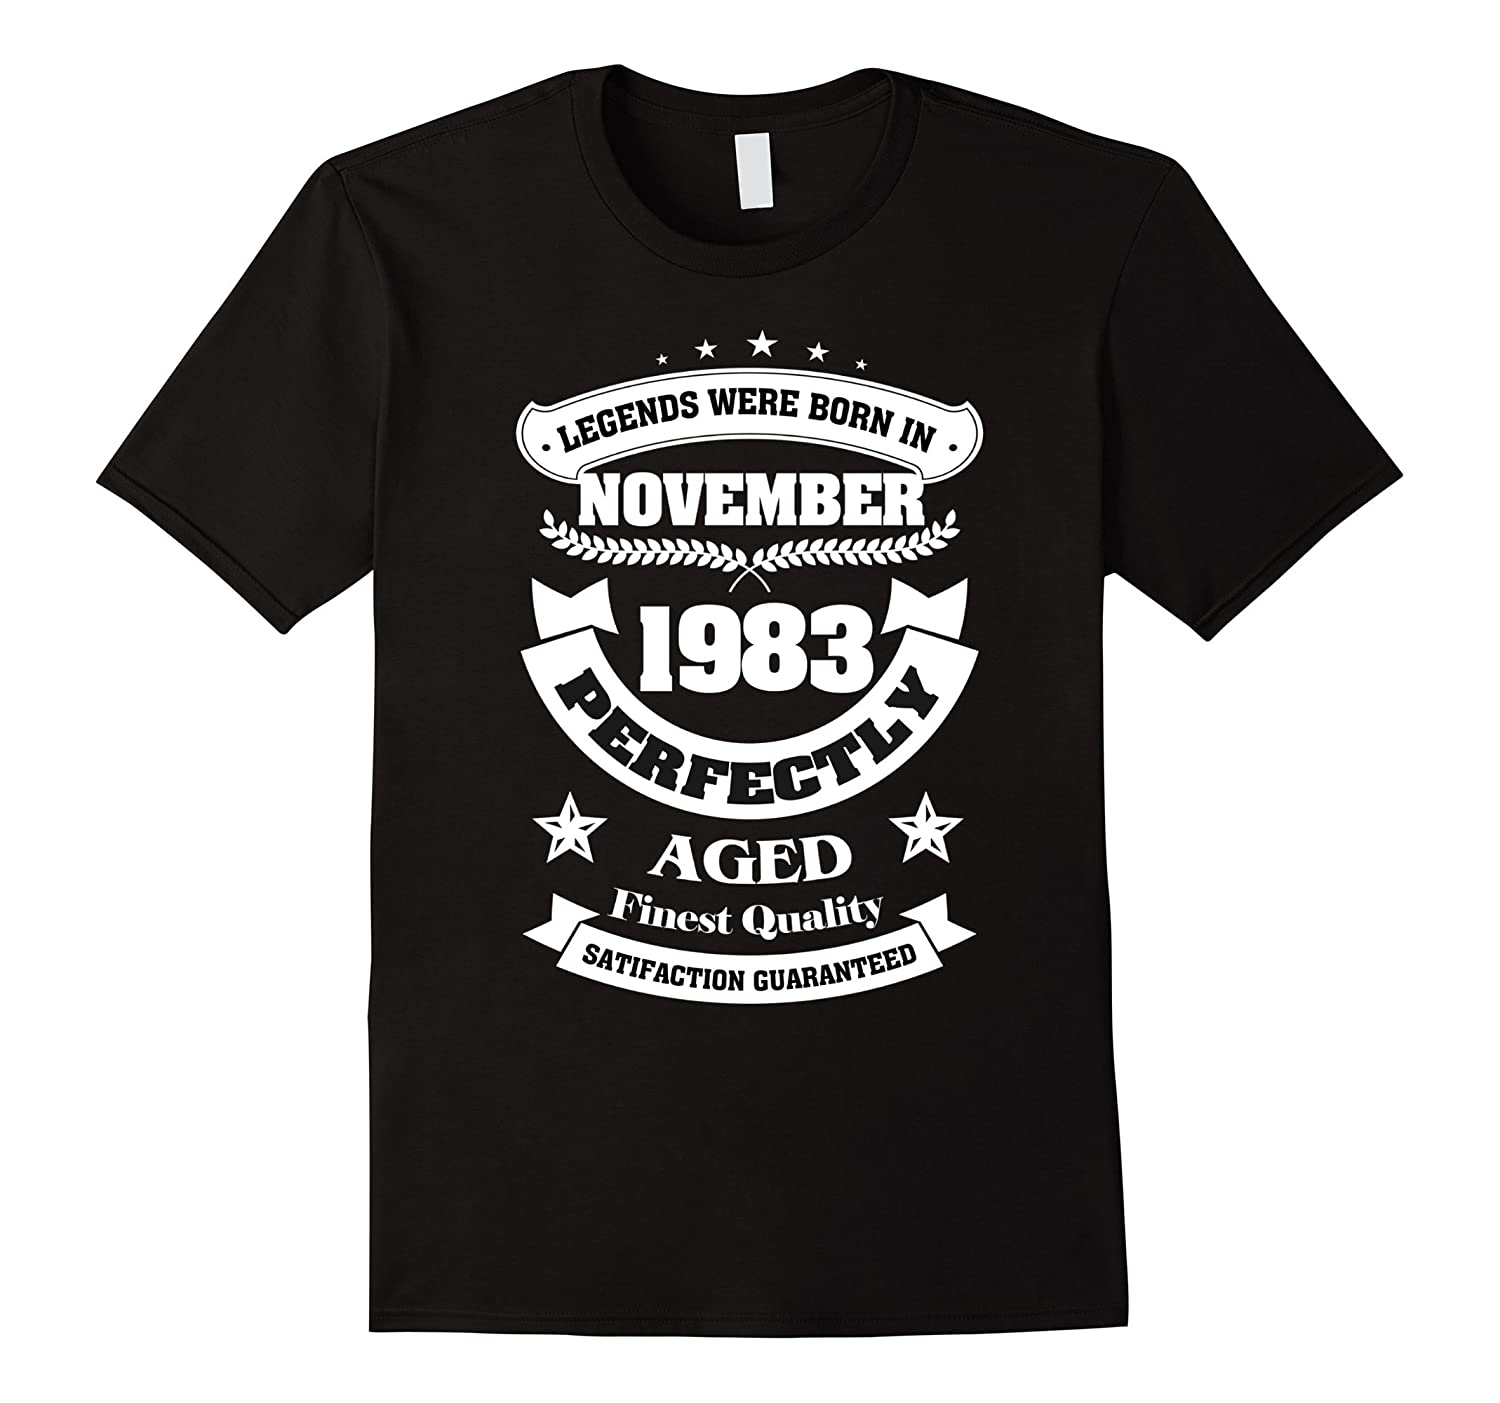 Legends Were Born In November 1983 Shirt 34th Birthday Gift-Rose